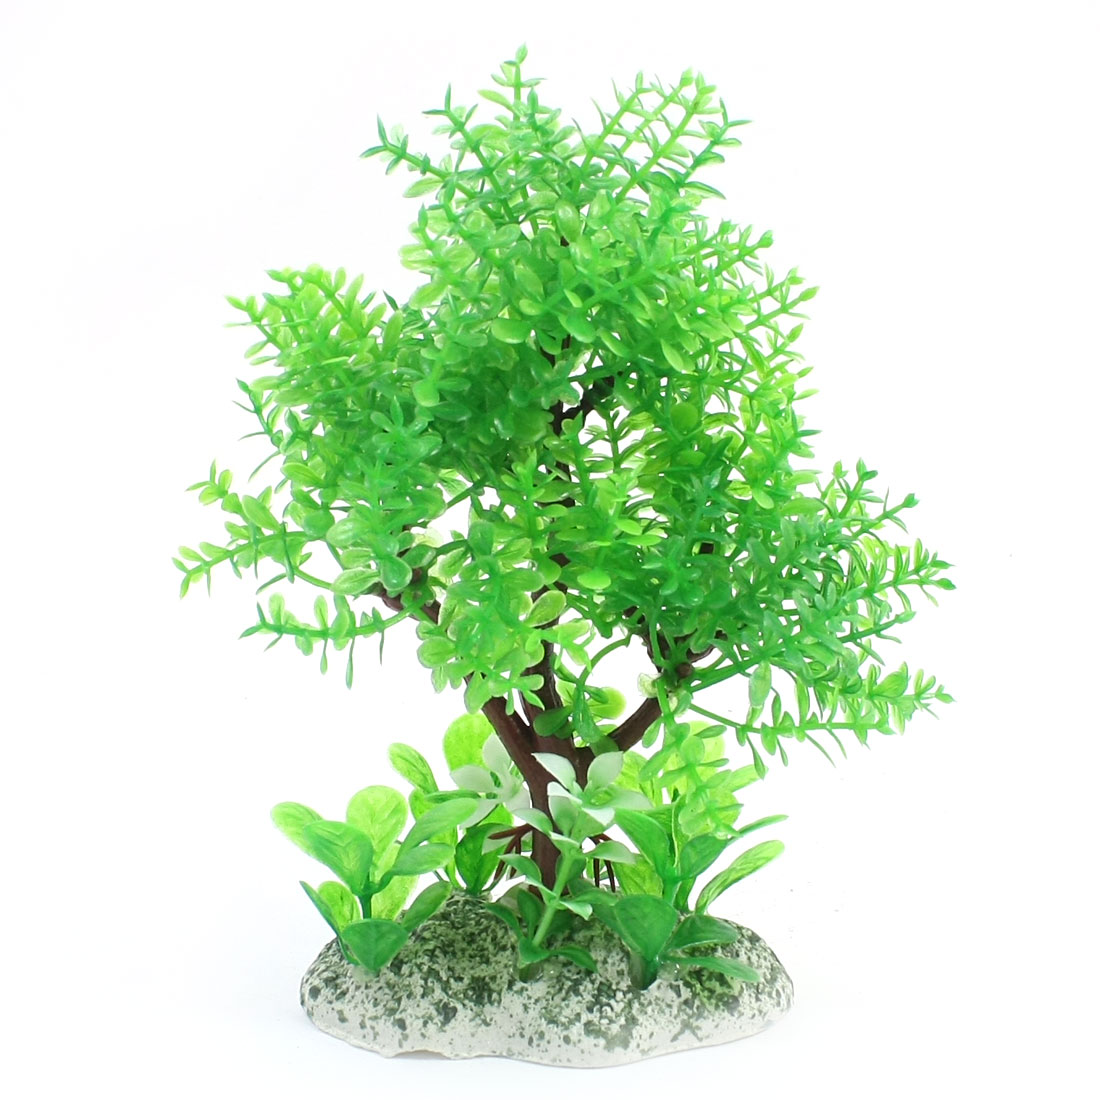 15cm High Green Brown Tree Shaped Plastic Water Plant Glass for Fishbowl Aquarium Decoration